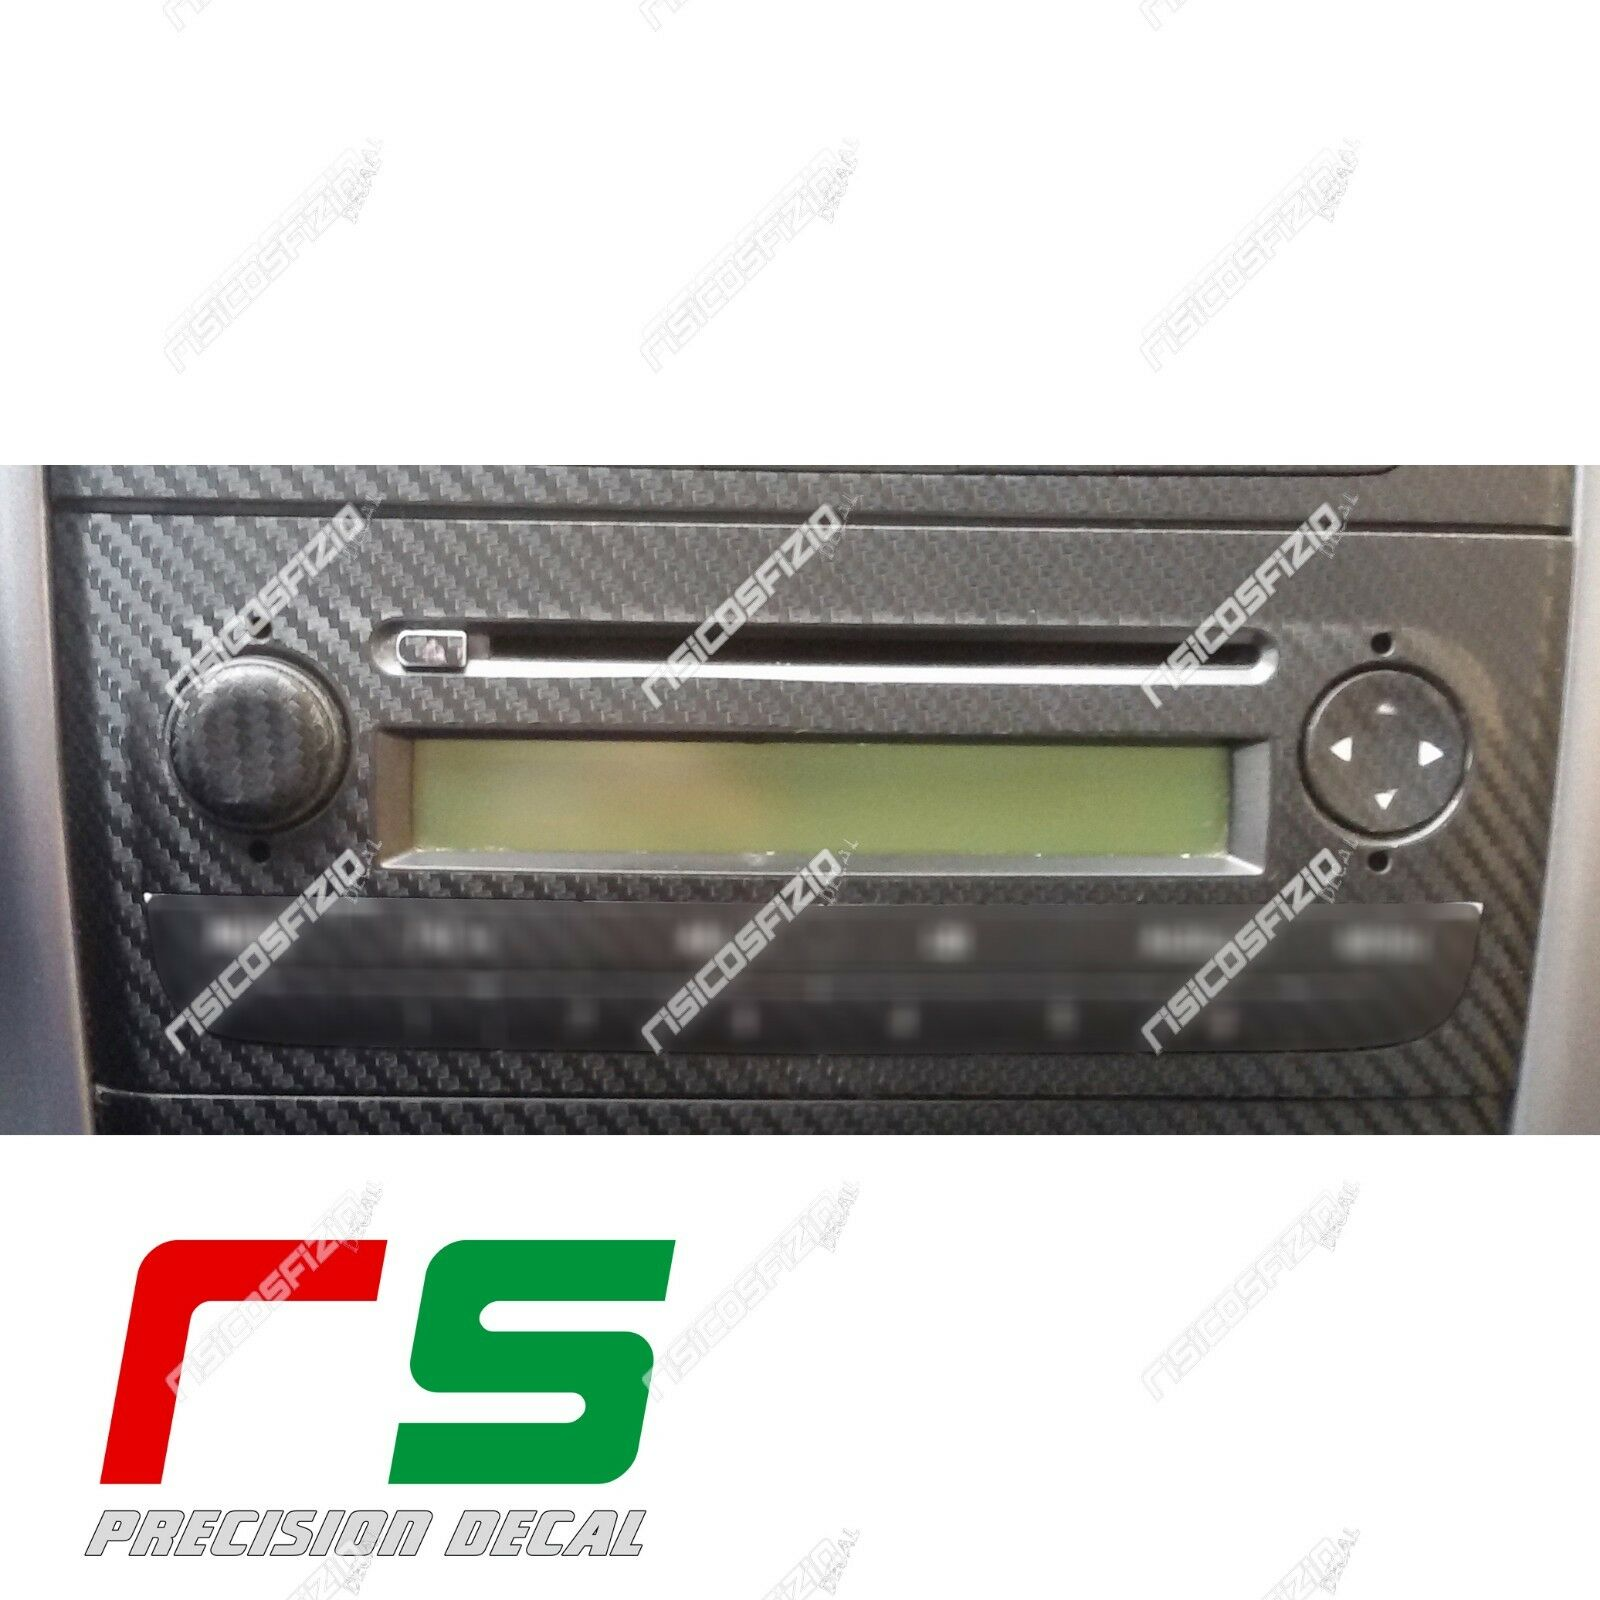 stickers Fiat Punto carbon look decal stereo CD player radio